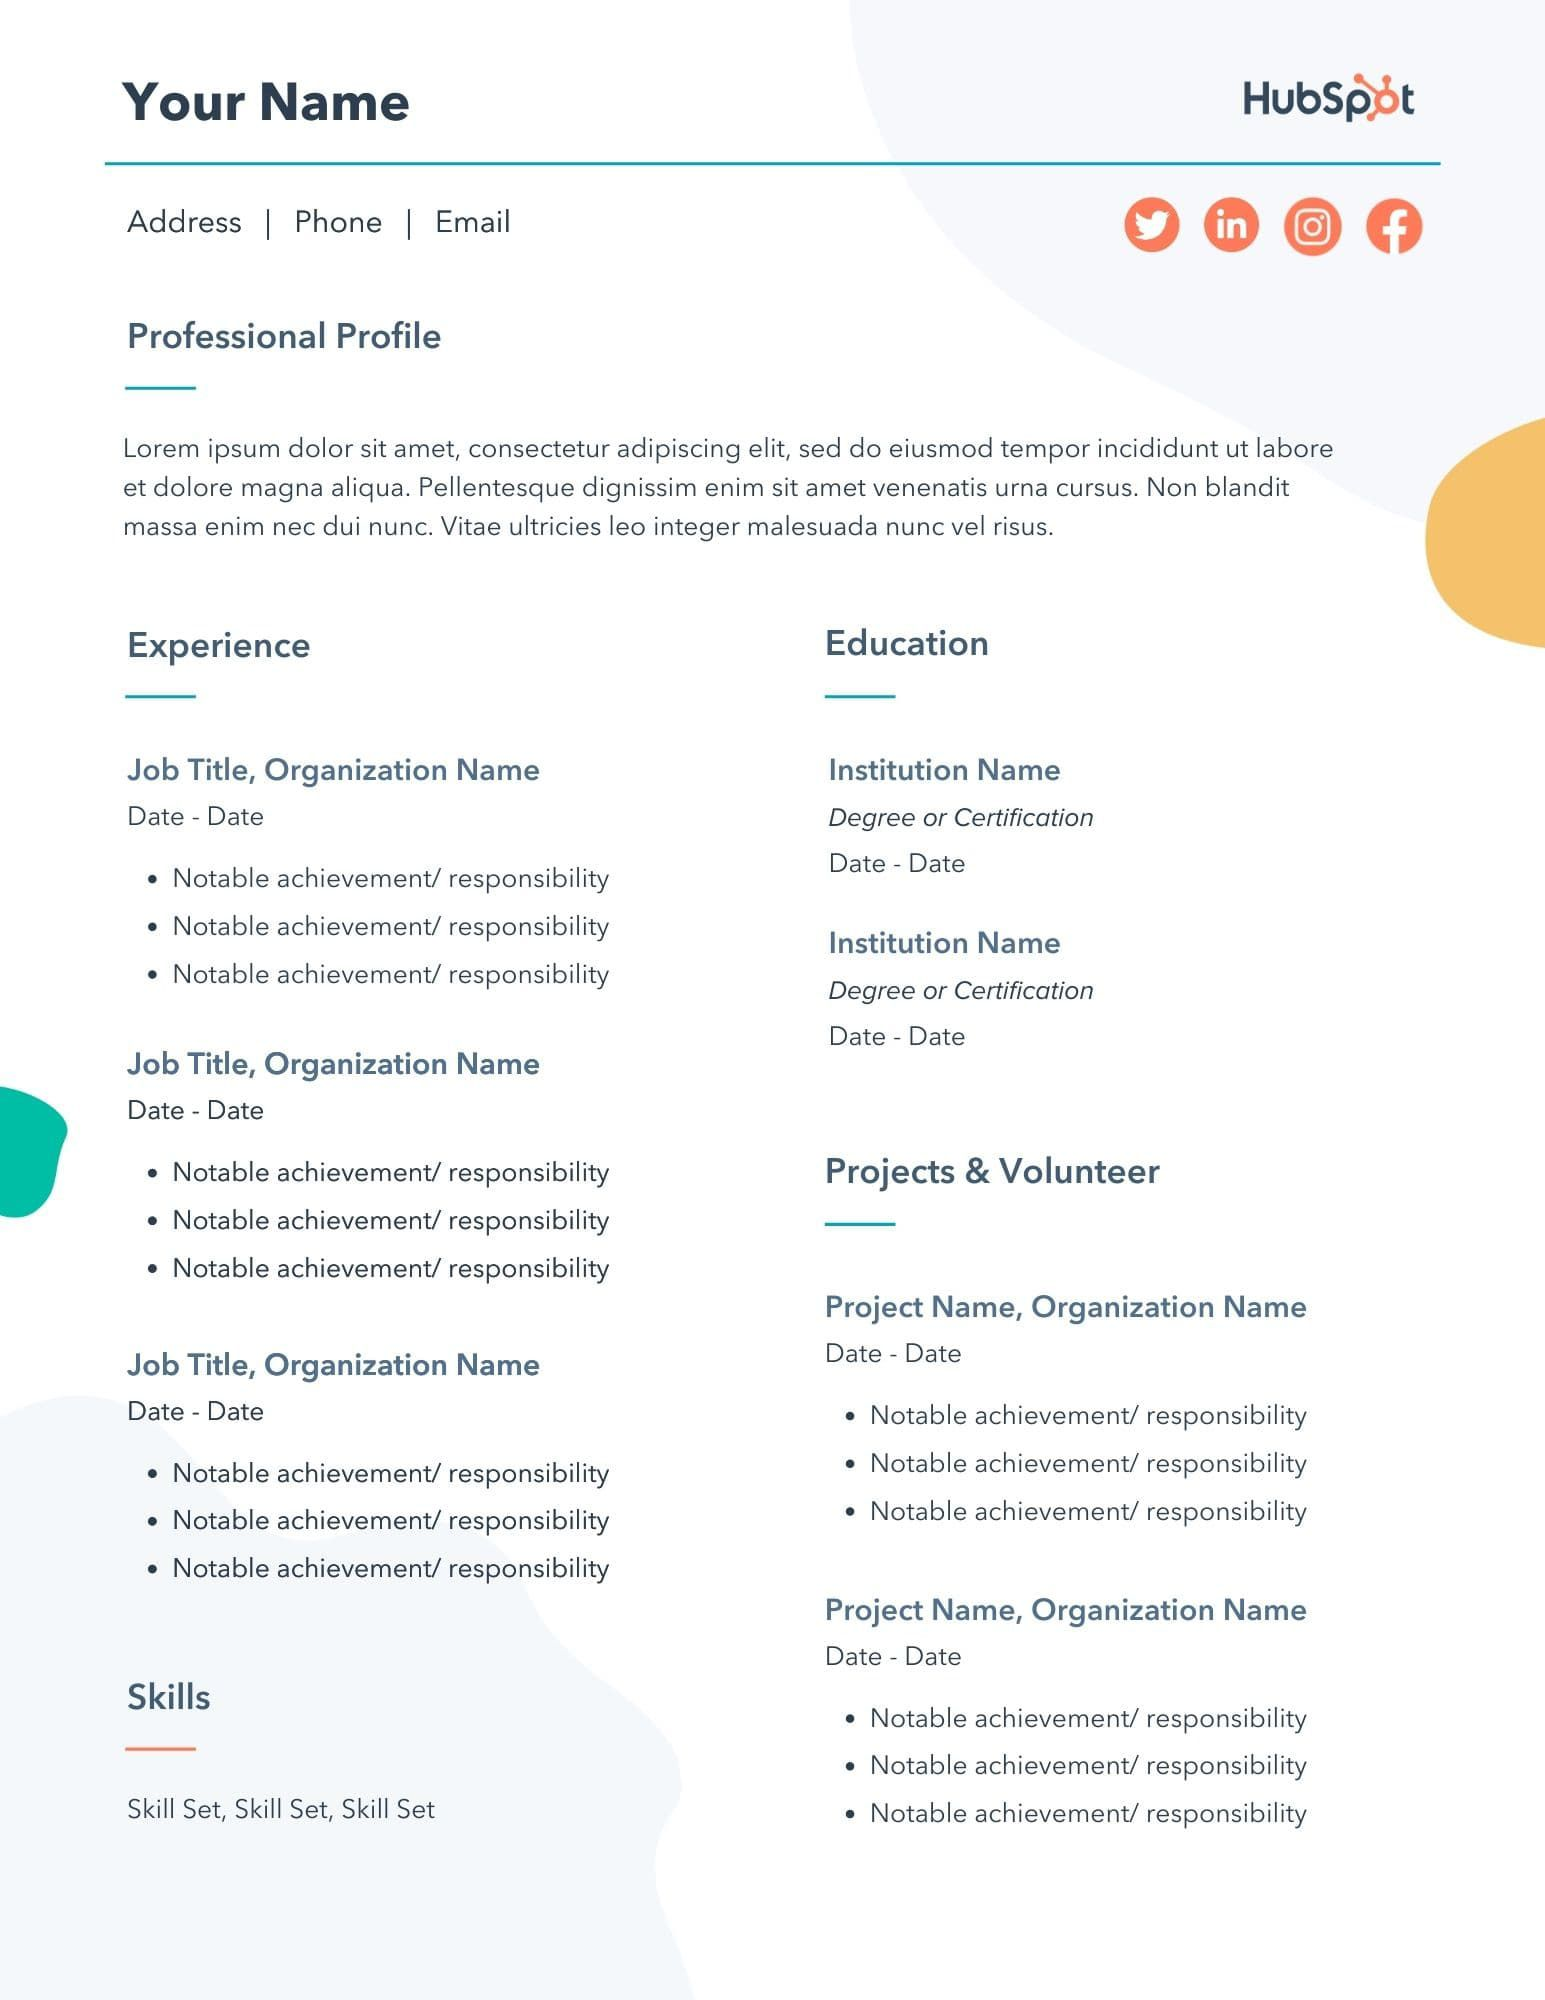 008 Unforgettable How To Make A Resume Template On Microsoft Word Inspiration  Create Cv/resume In DocxFull